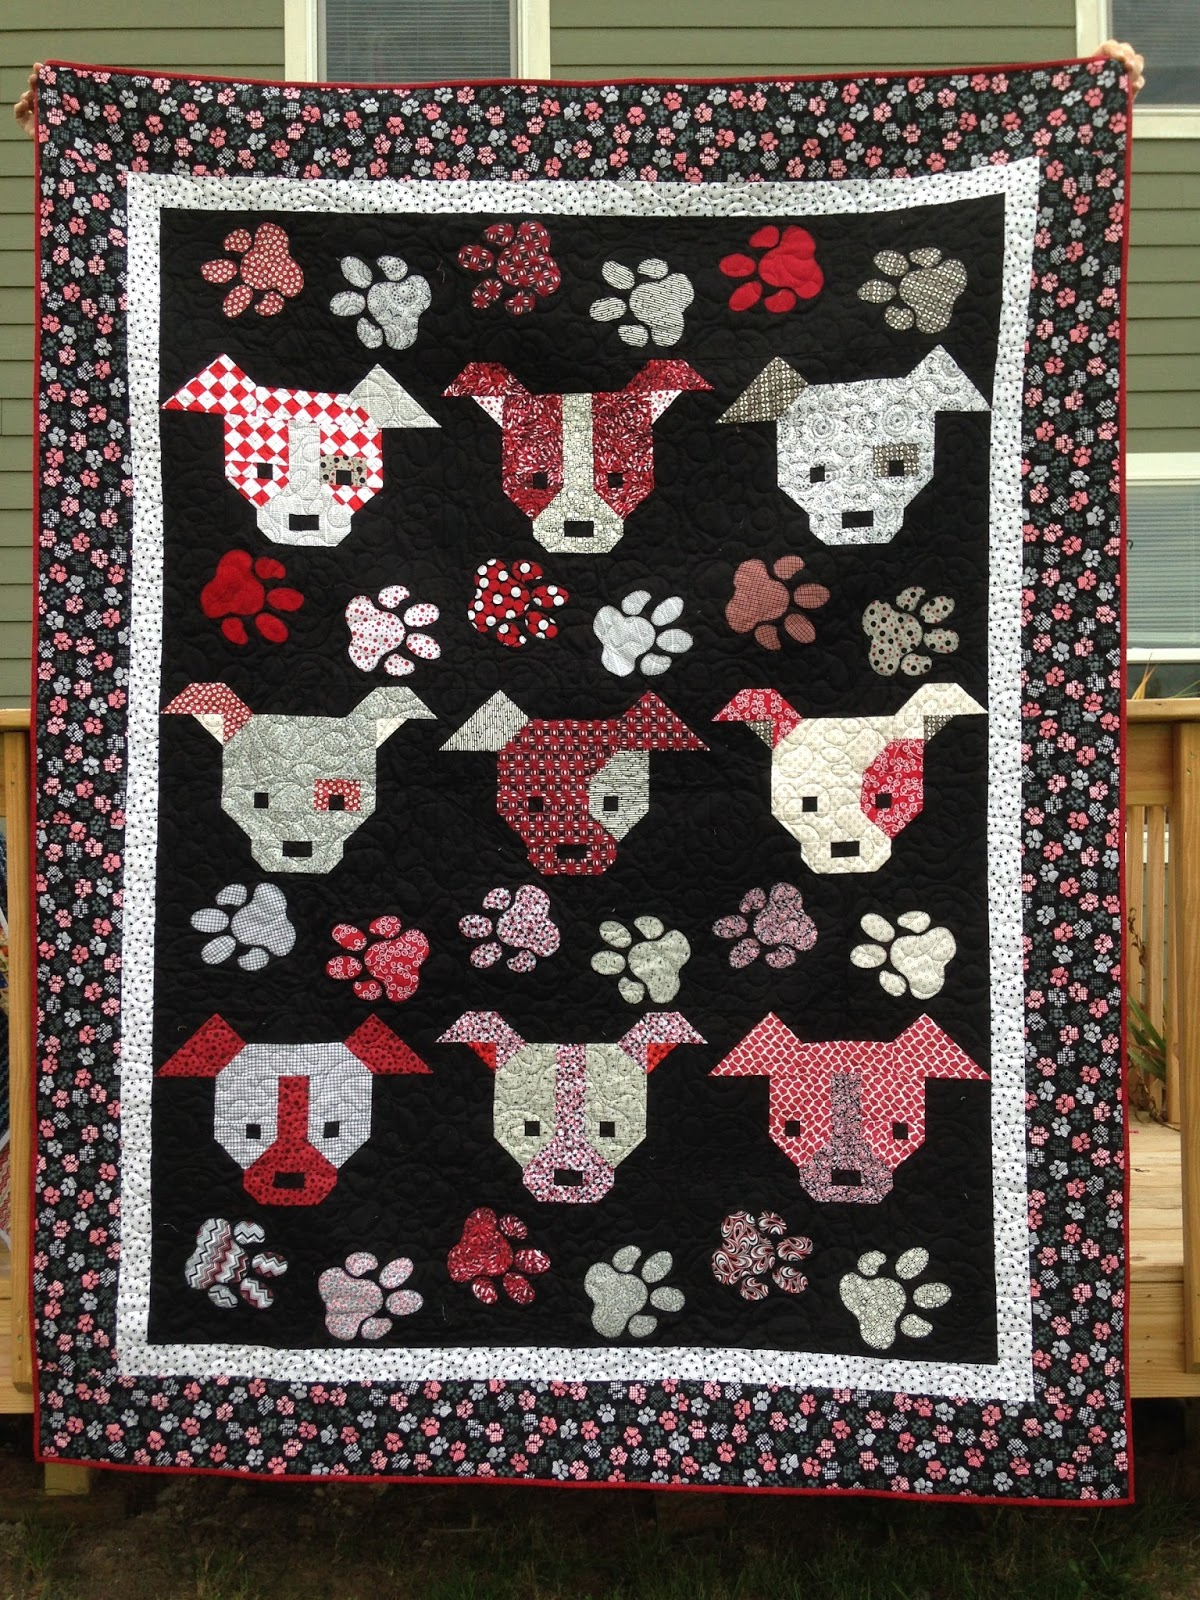 Dog Gone Cute Blog Hop and My Day | The Quilting Queen Online : quilting queen - Adamdwight.com